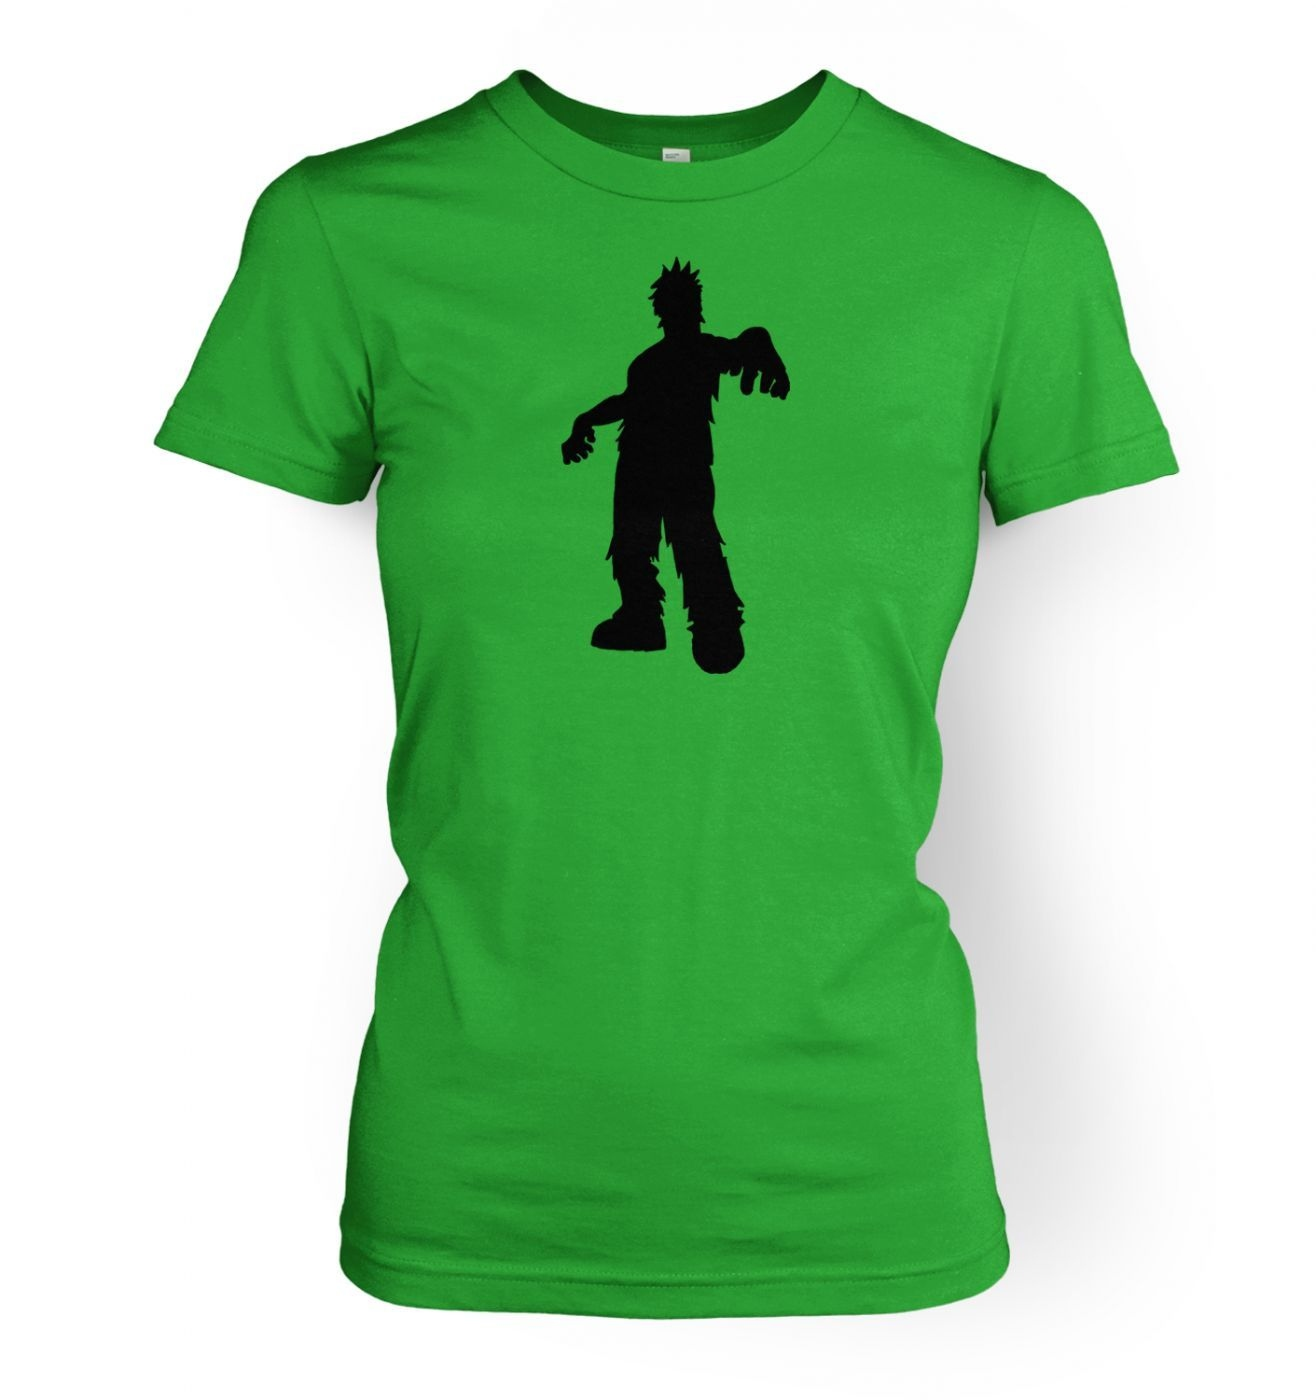 Zombie Silhouette women's fitted t-shirt